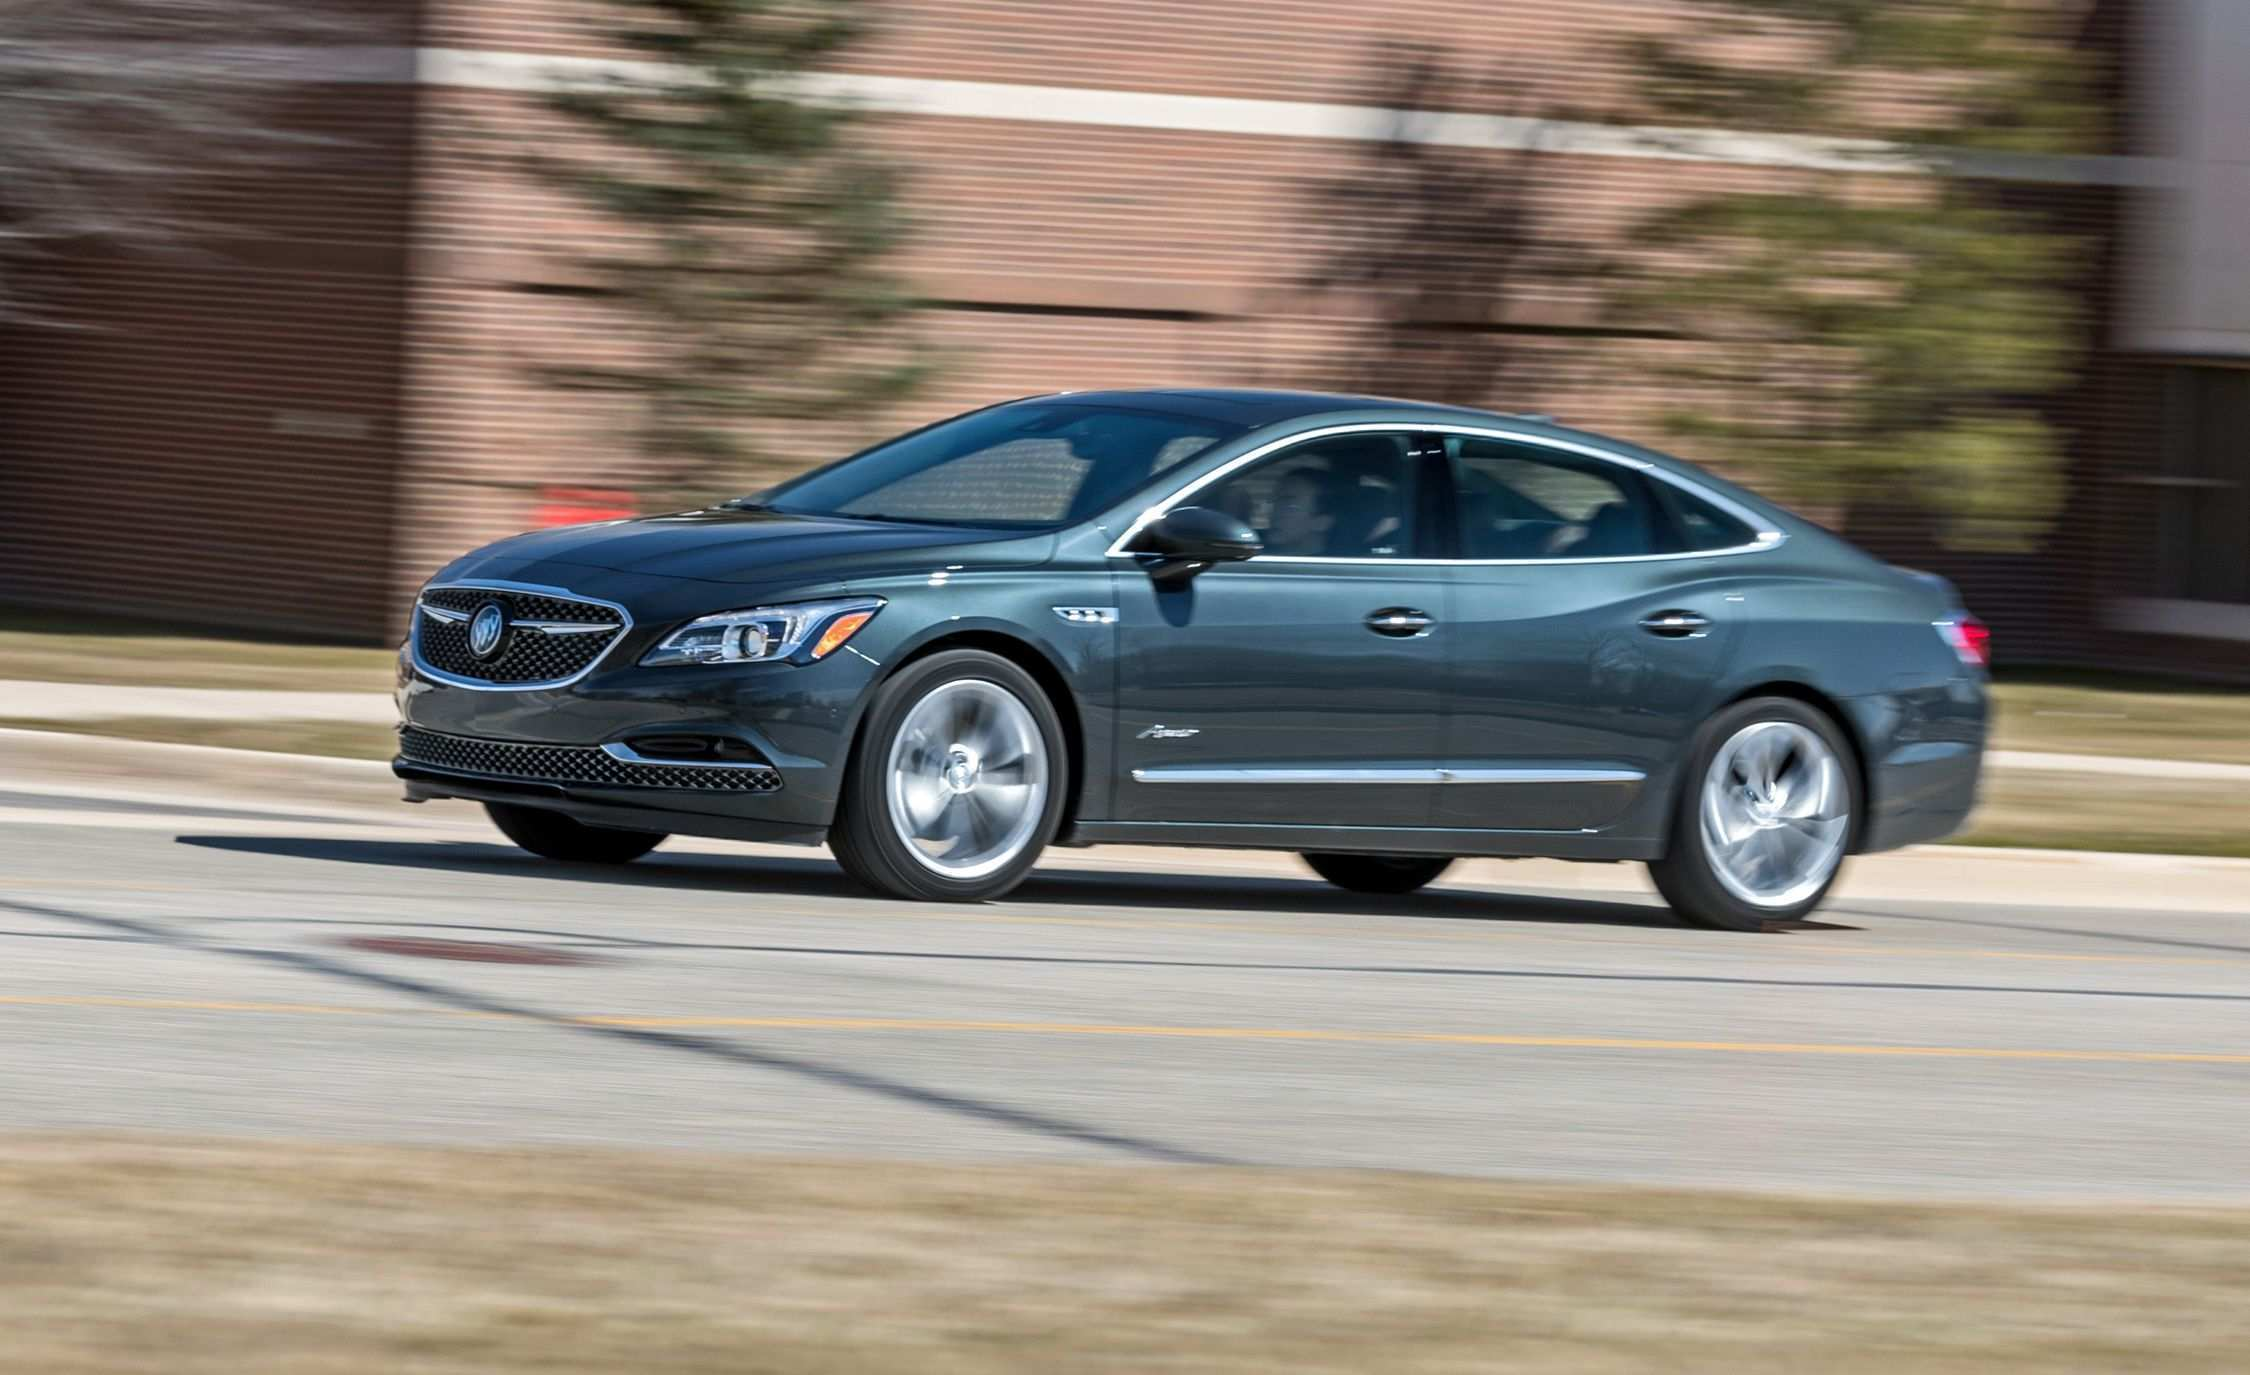 40 The Best Buick Lacrosse 2019 Overview Performance by Best Buick Lacrosse 2019 Overview